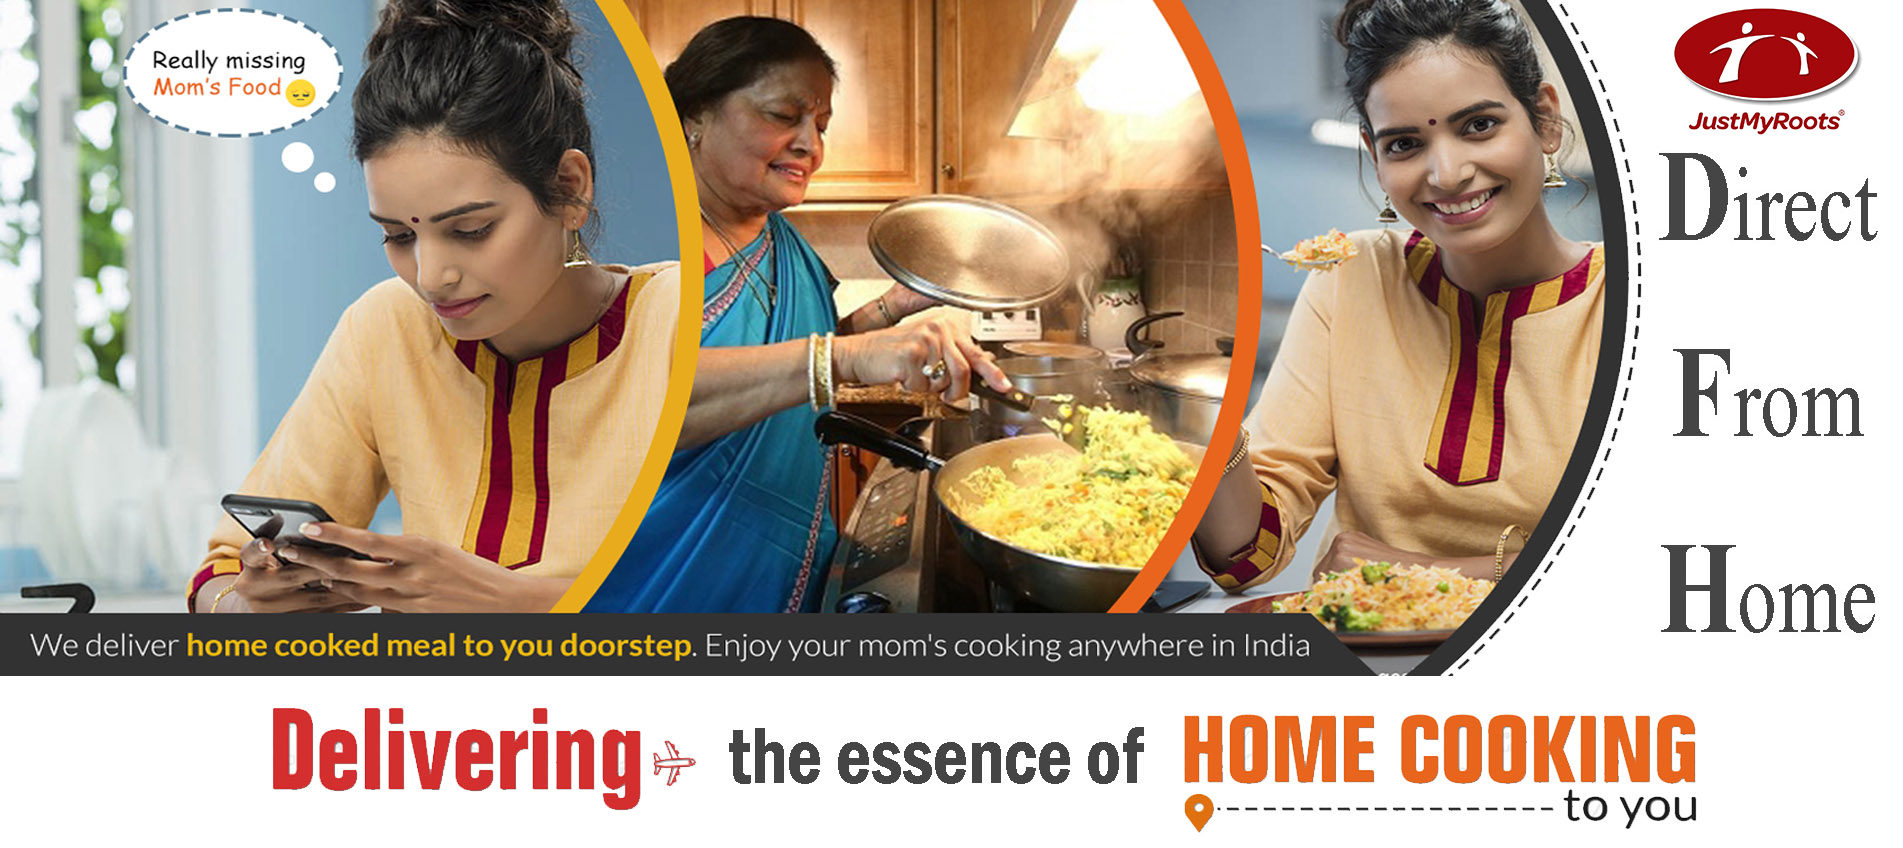 JustMyRoots, the Food tech platform has been providing DFH service wherein they deliver food, cooked in your Mom's Kitchen, to you - Vyapaarjagat